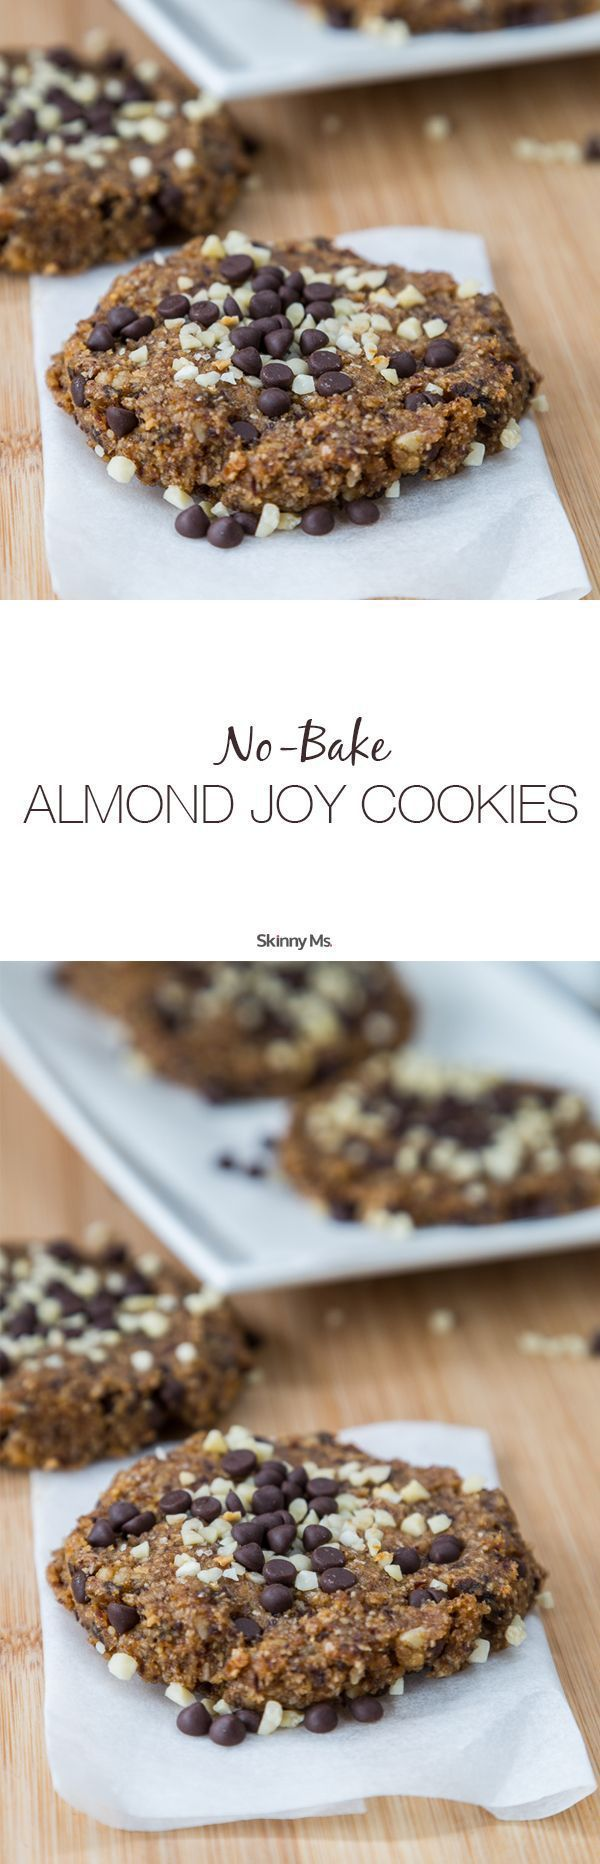 lifes simple joy in baking a cookie Baking, life's simple pleasure they are made by combining crushed oreo cookies with cream cheeses (joy of baking.